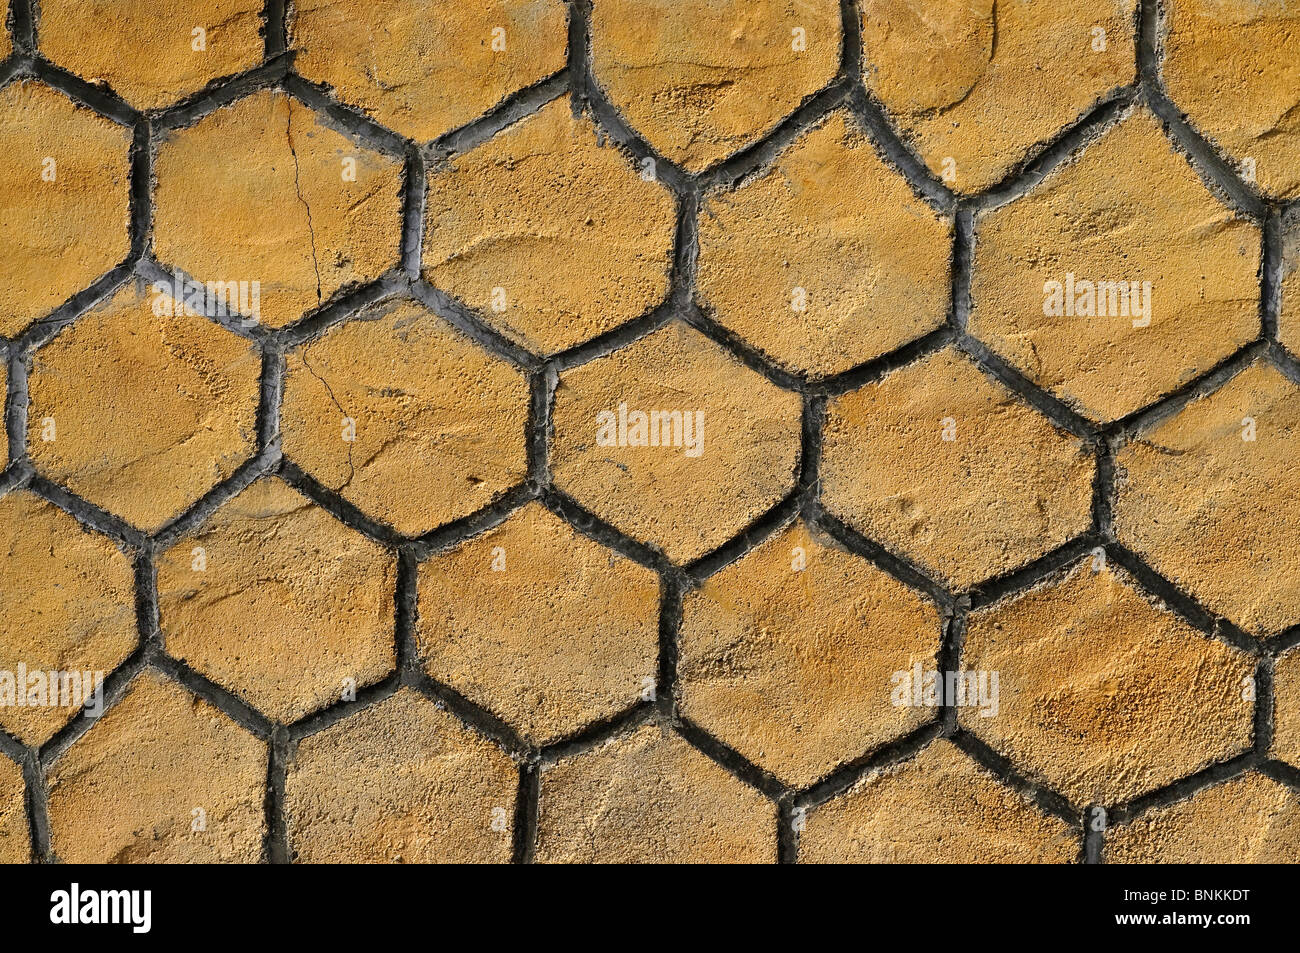 Exterior wall with false honeycomb tile effect - France. - Stock Image